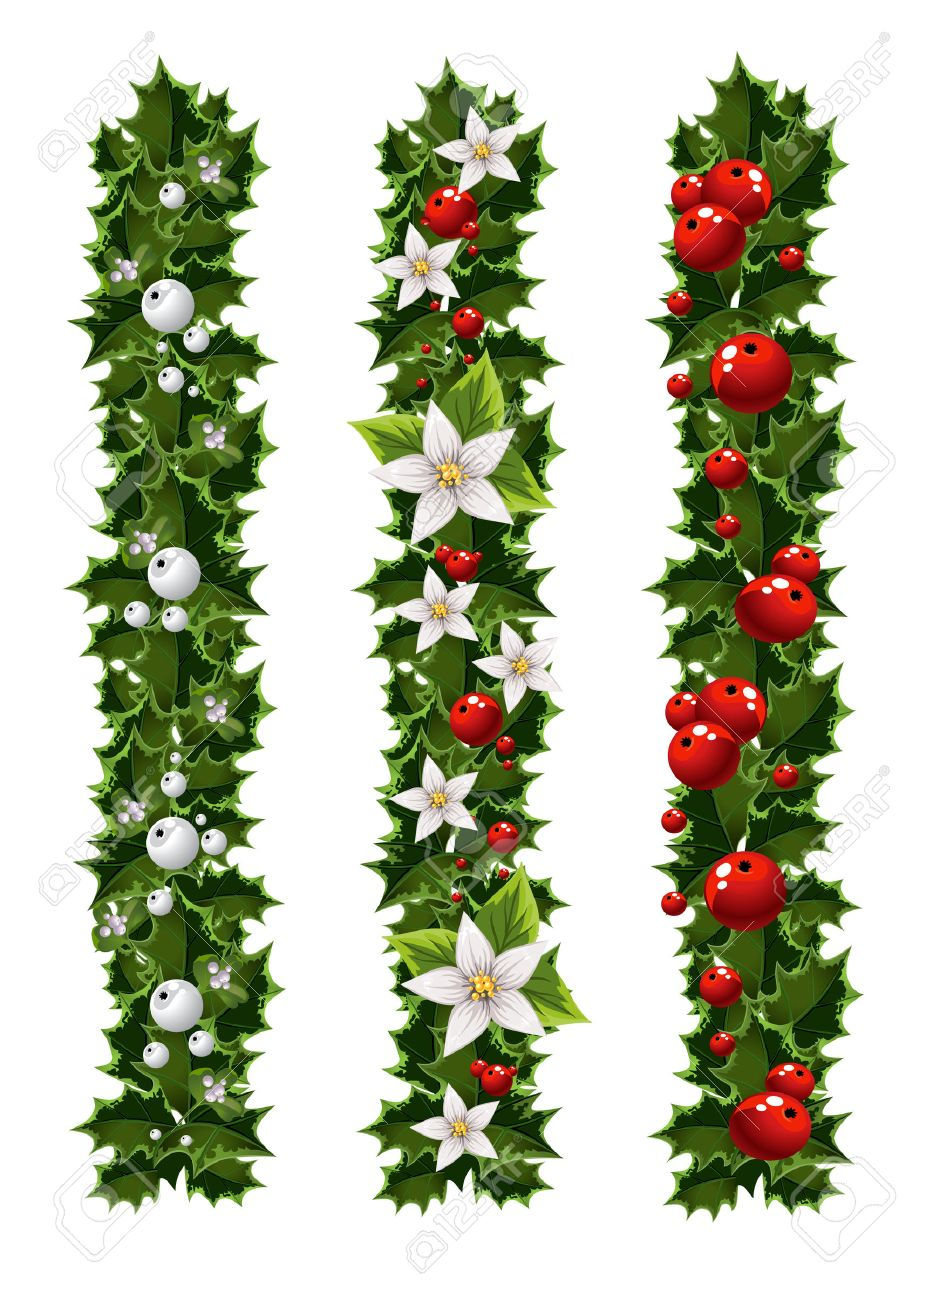 green christmas garlands of holly and mistletoe royalty free